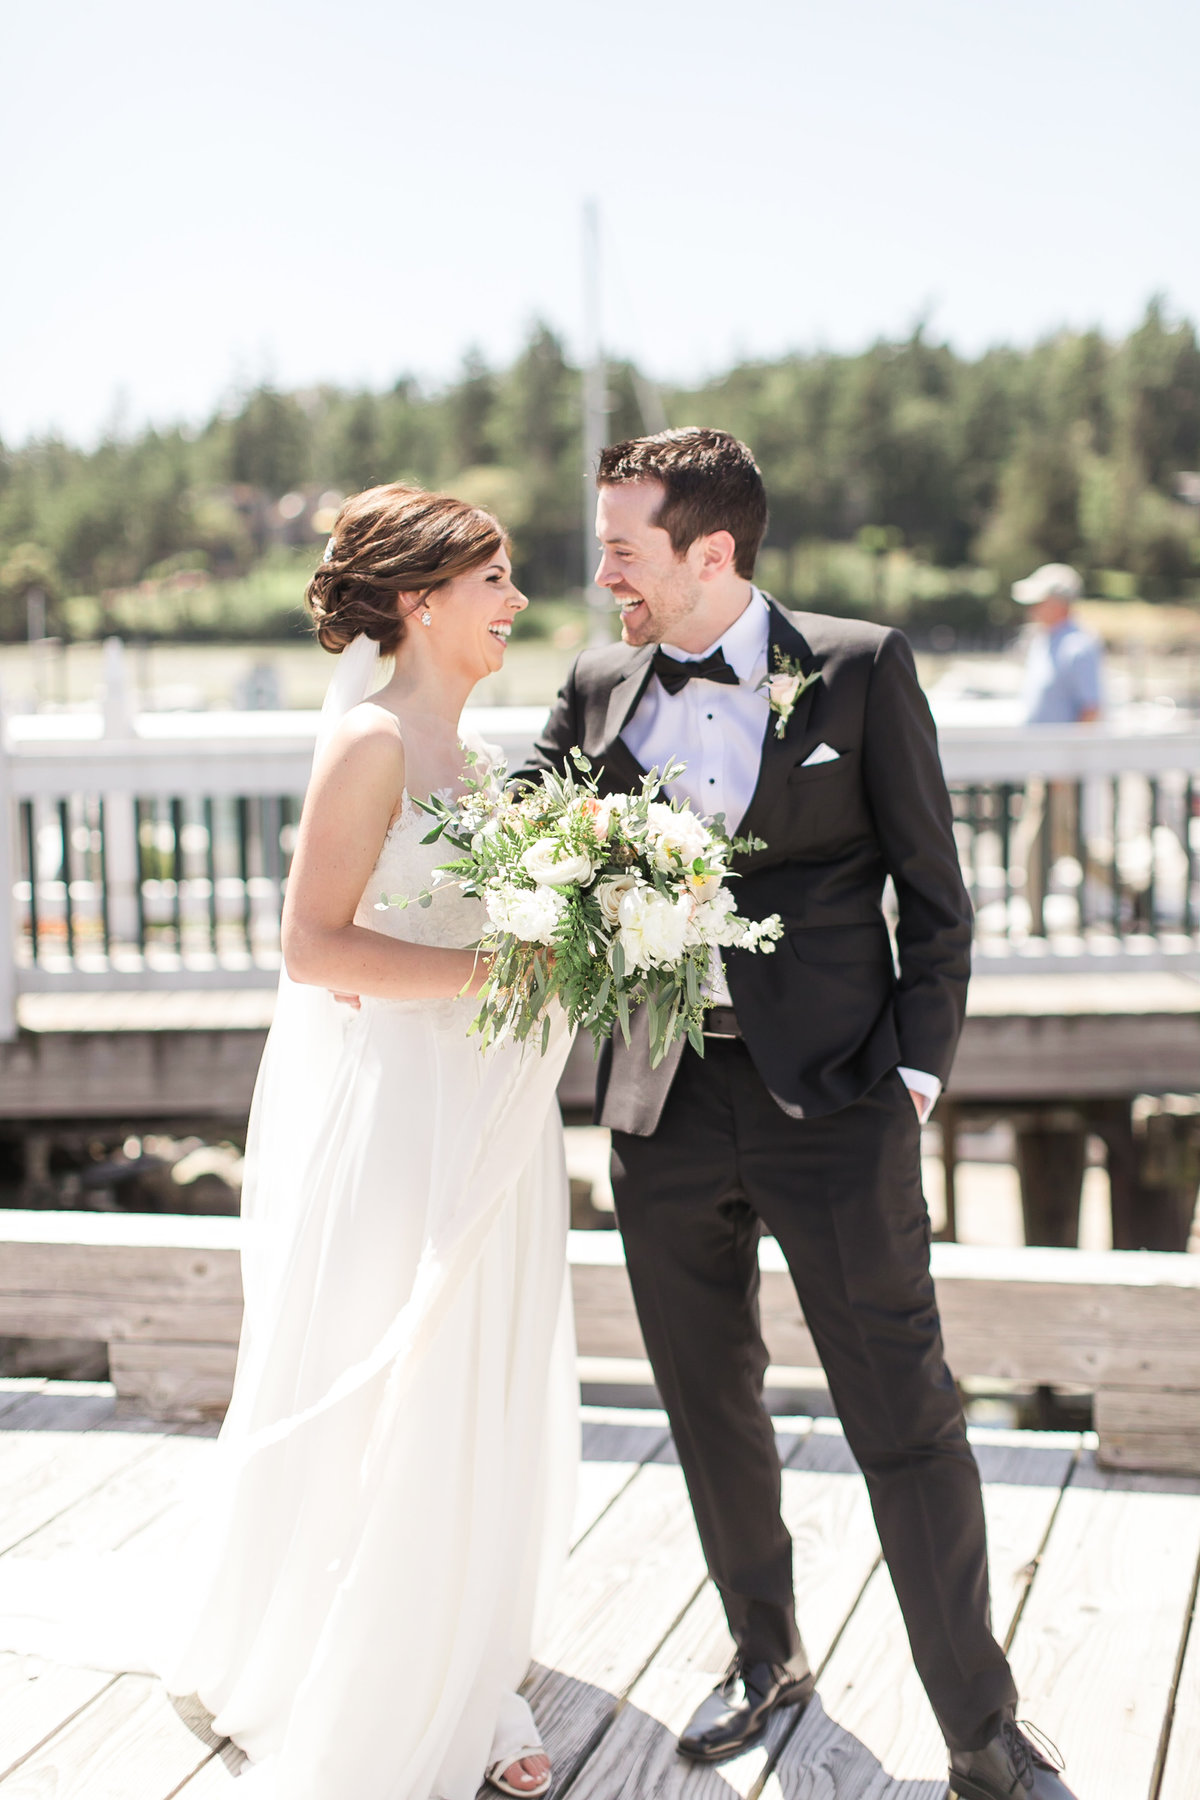 ashley-dave-roche-harbor-wedding478228